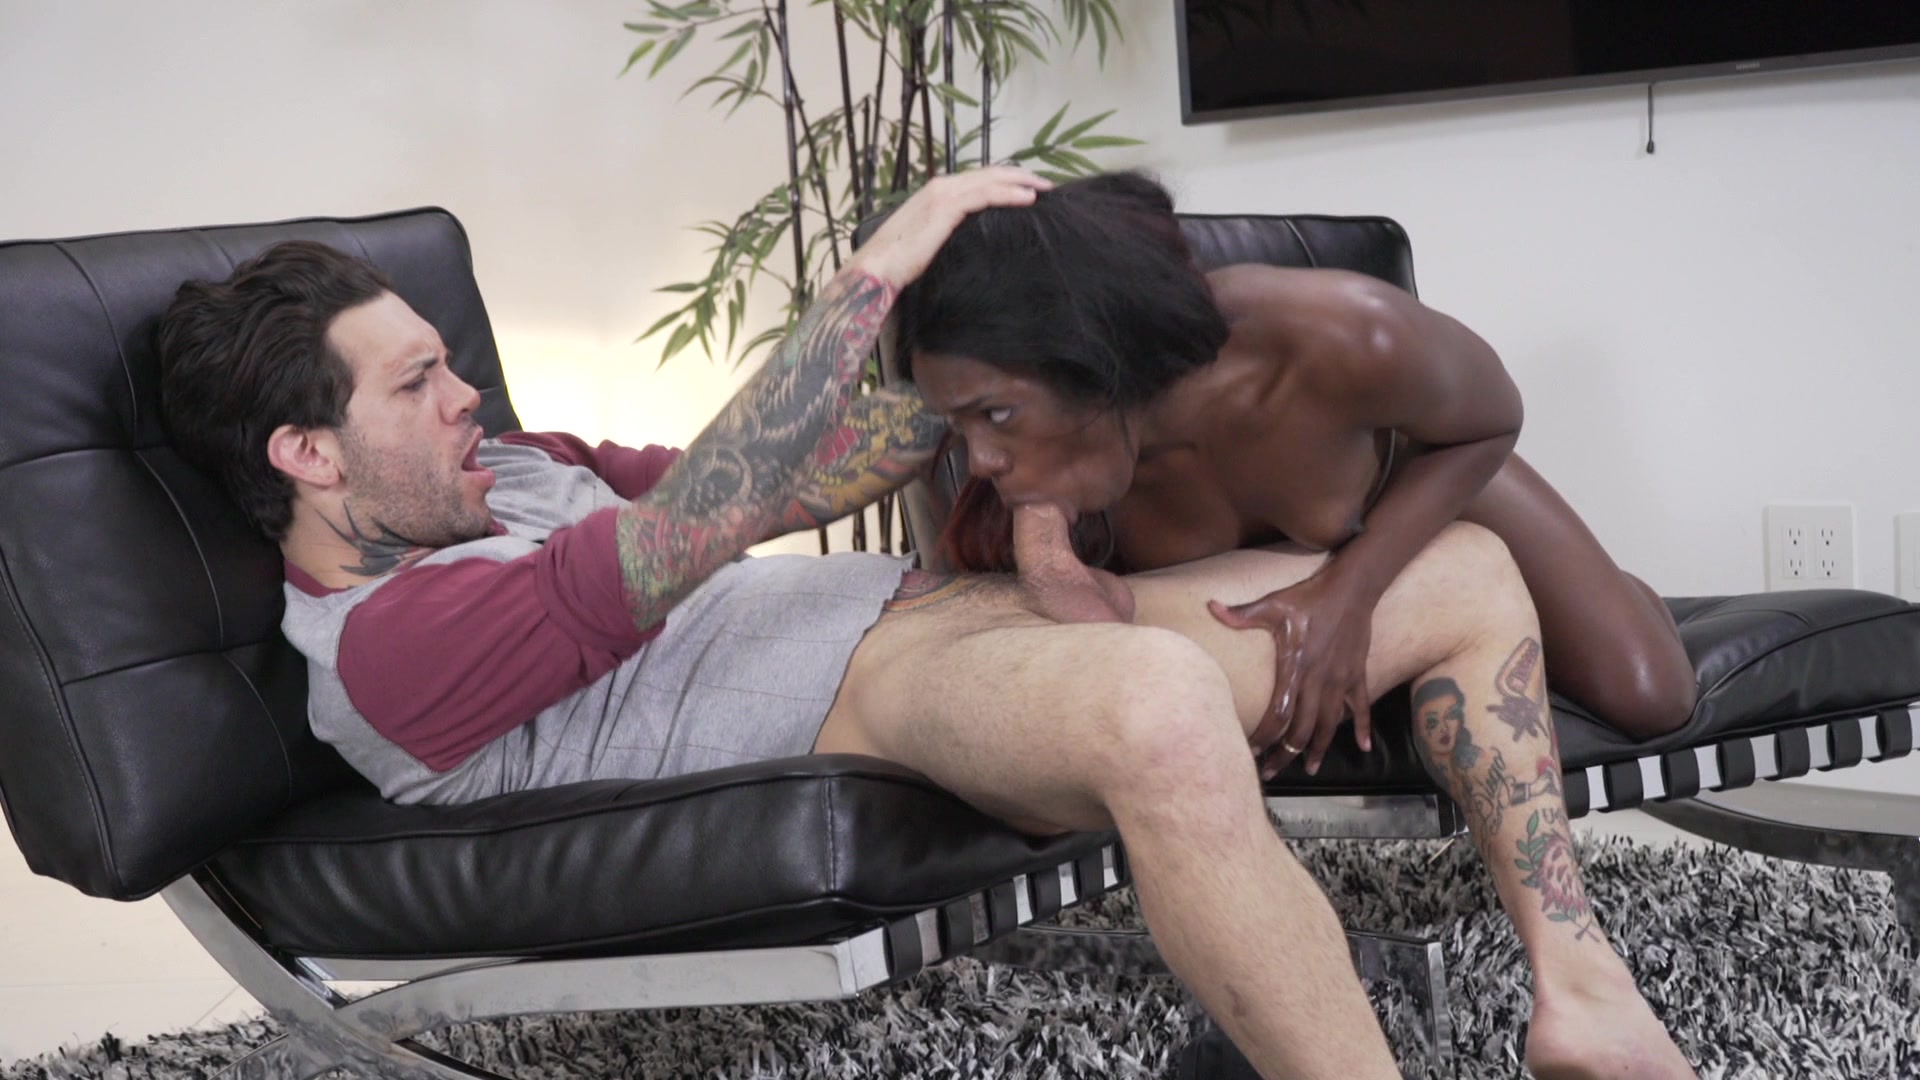 Scene with Ana Foxxx - image 10 out of 20